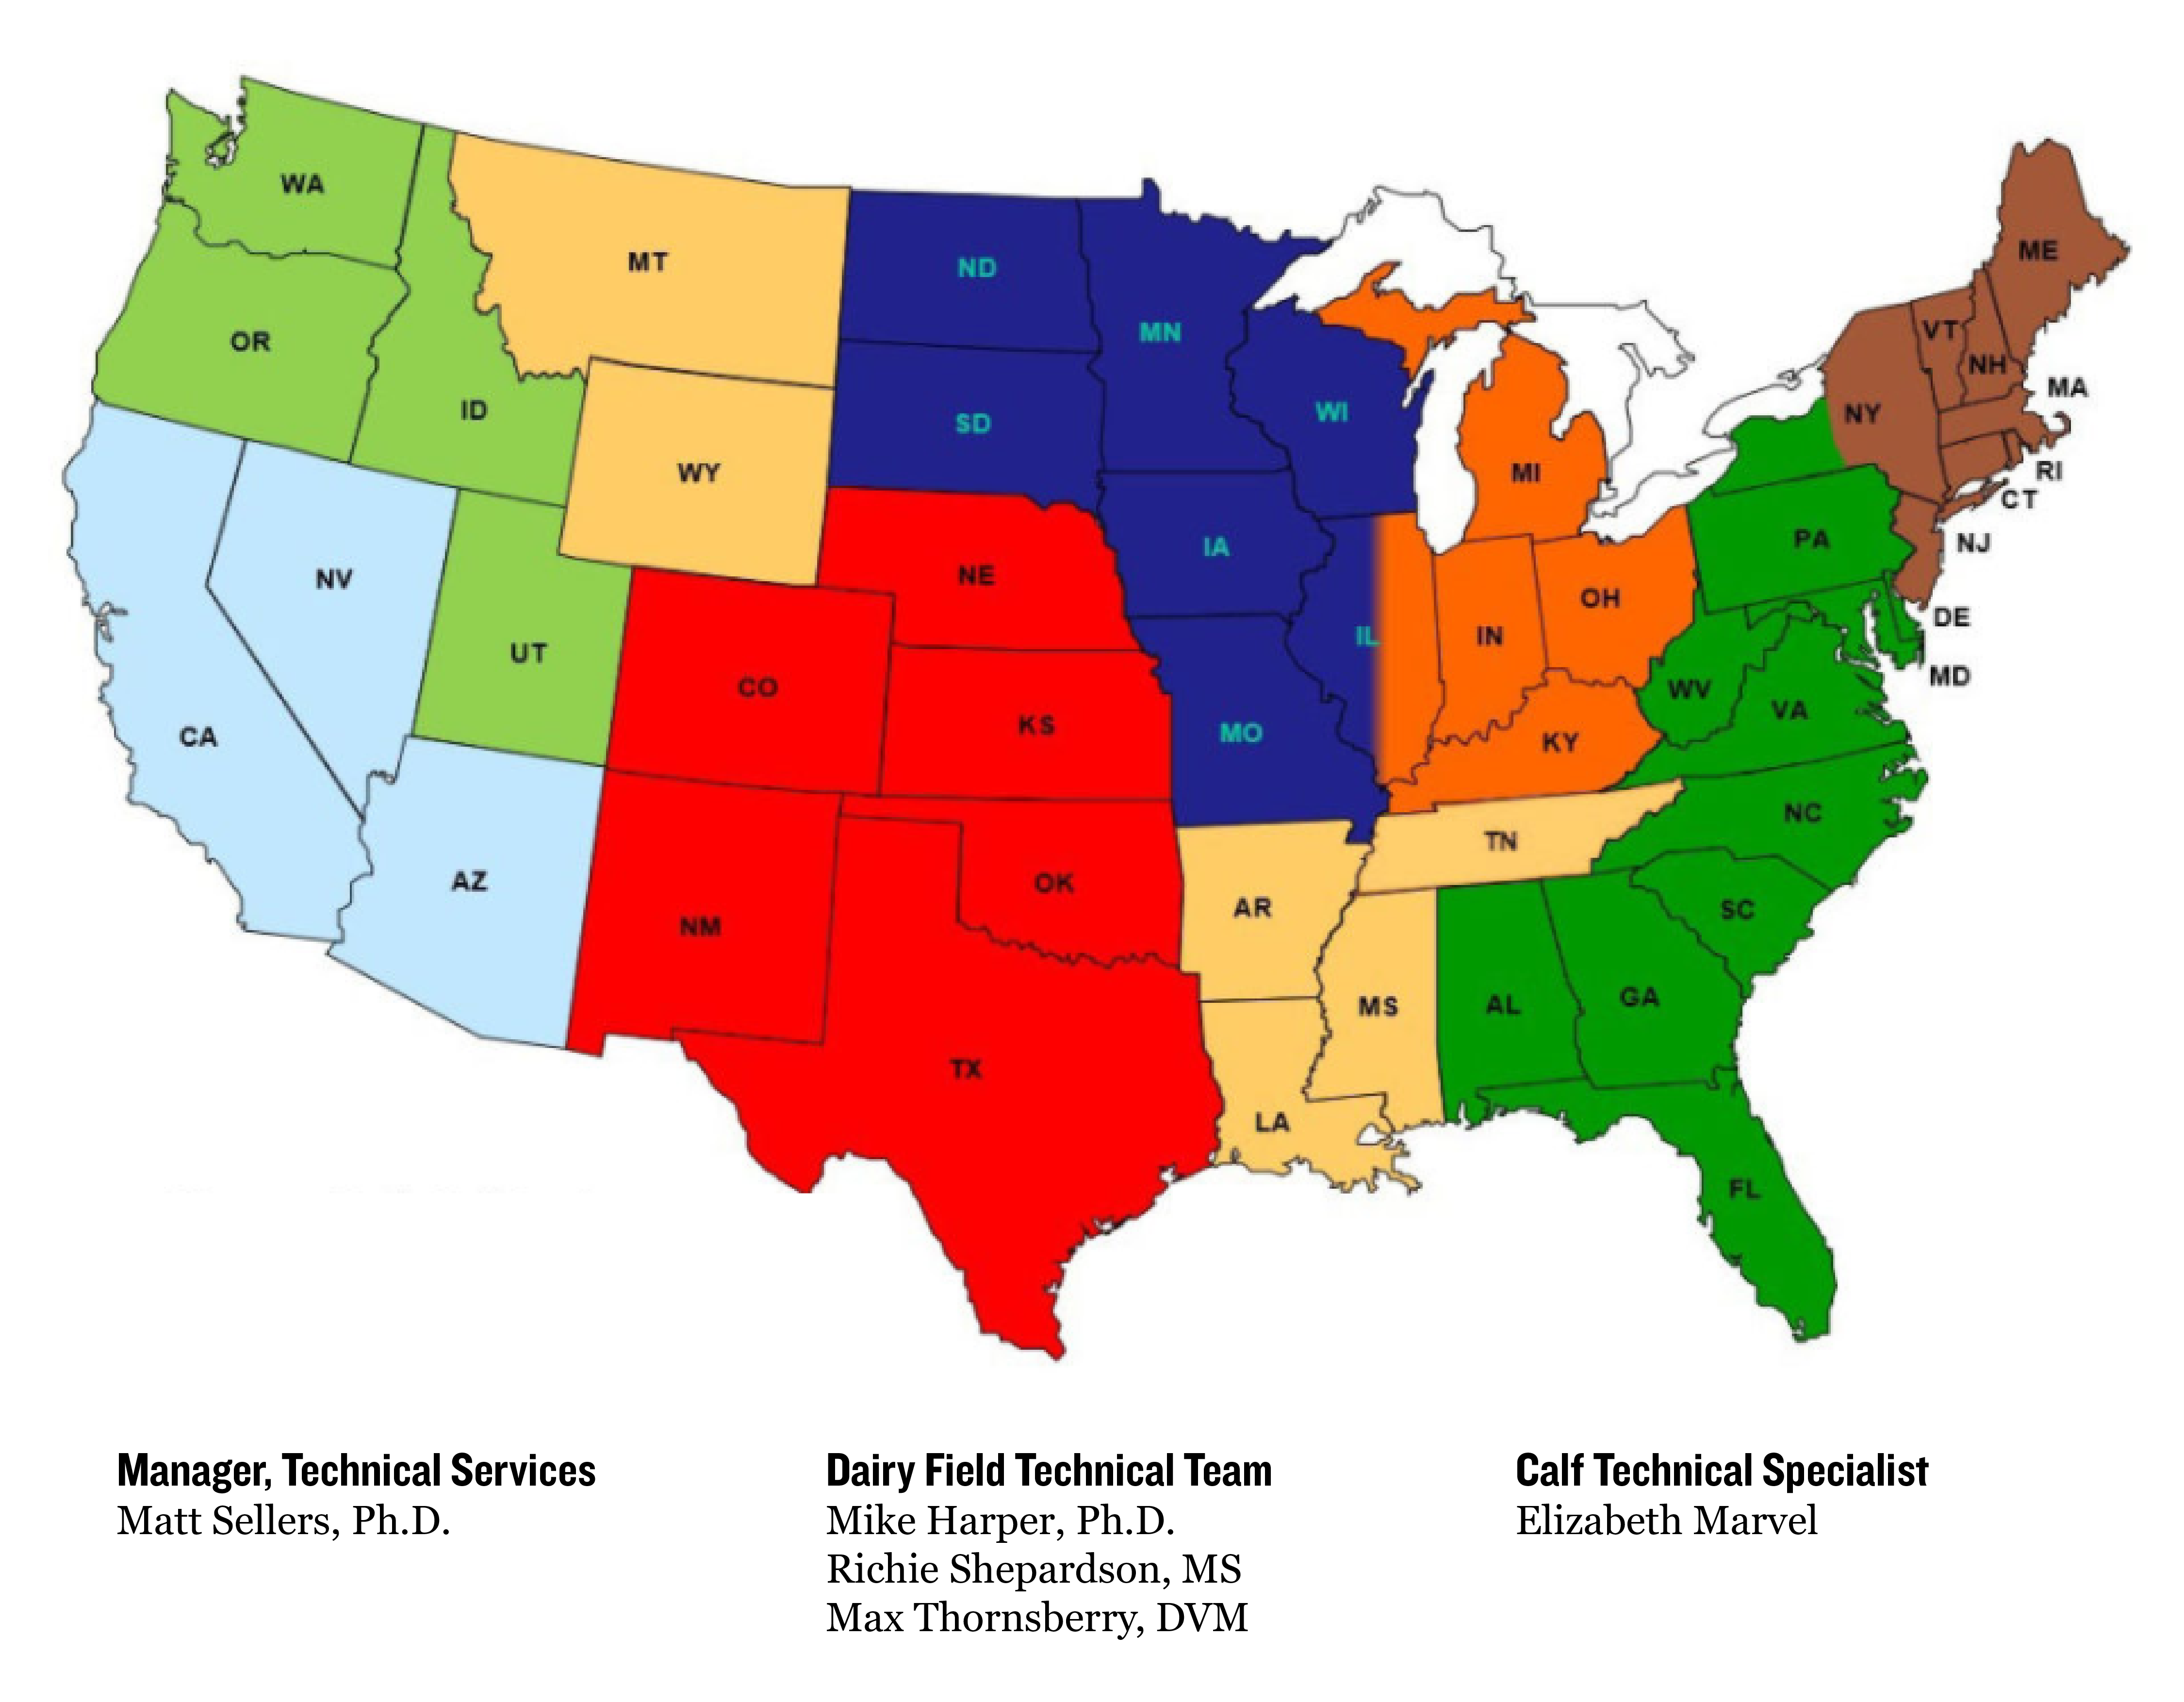 US map with national account manager sales territories